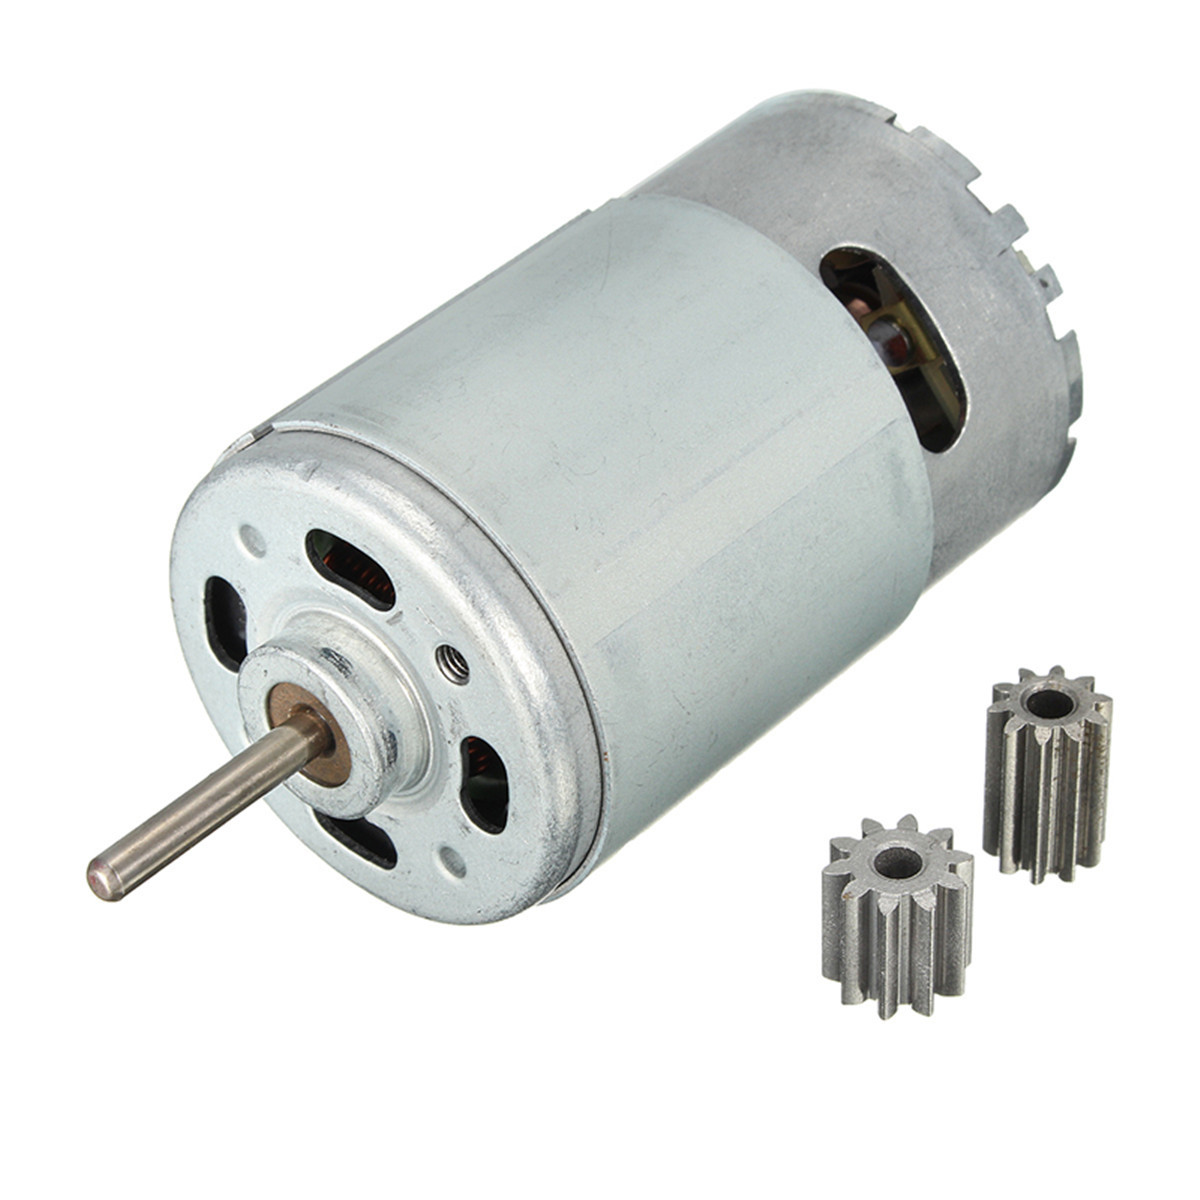 best price dc 12v 30000 rpm motor gears rotary speed gear box motor for kids rc ride on car spare parts 10teeth 12 volt